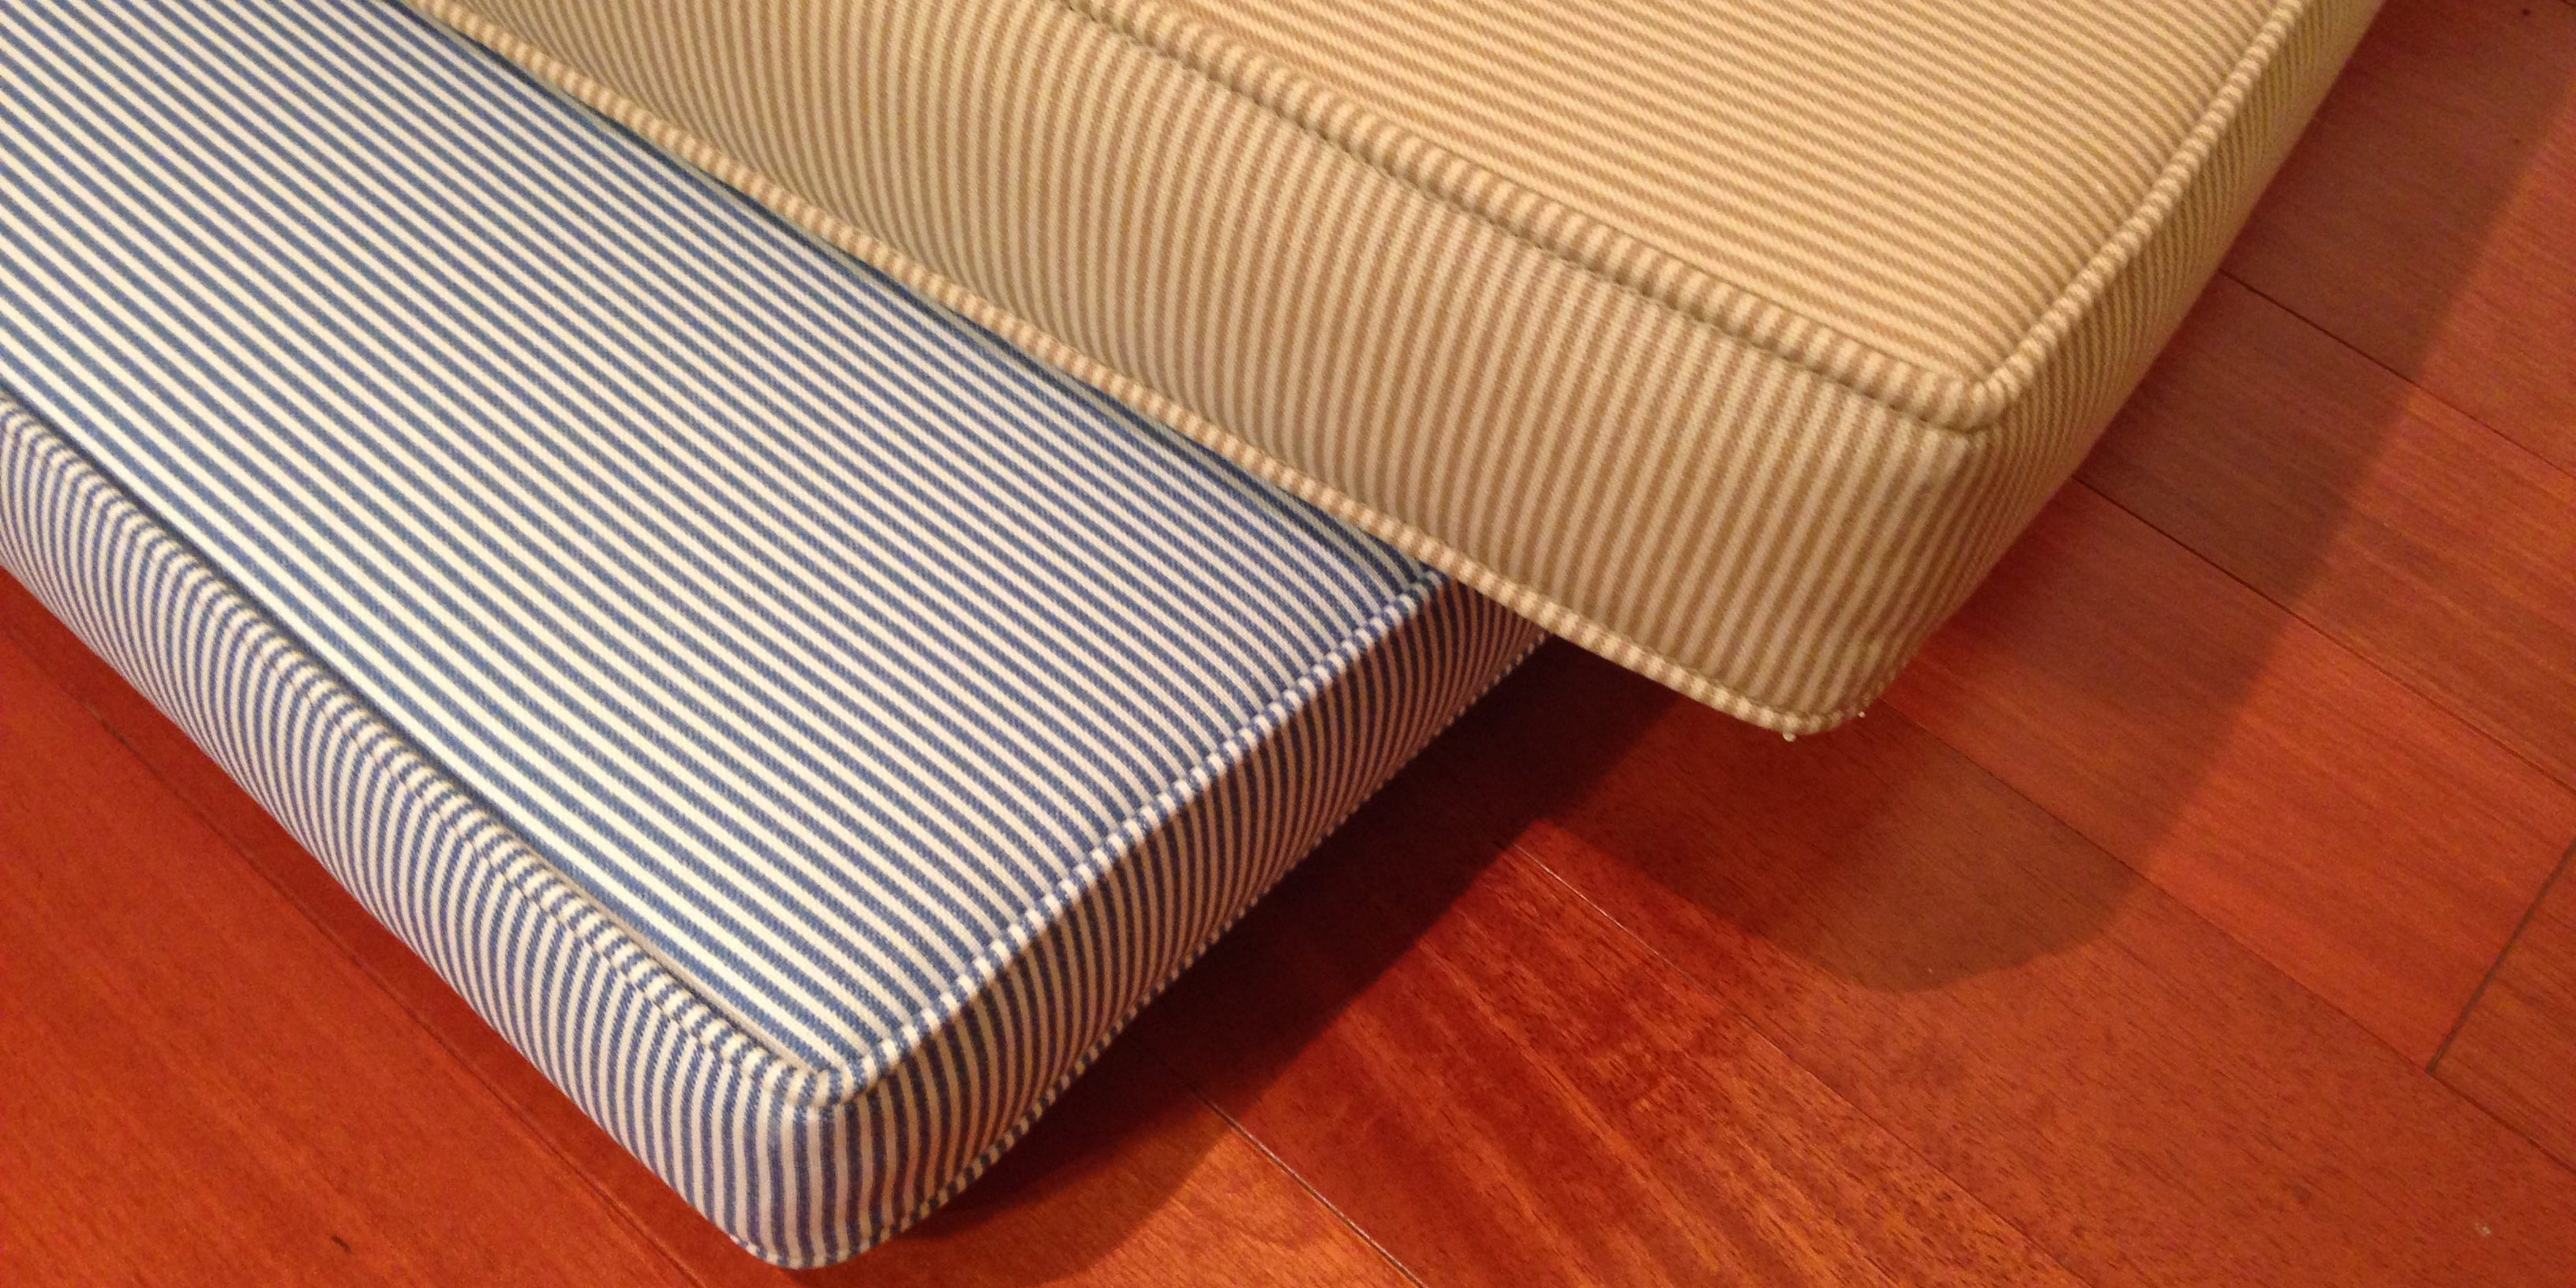 Cheap Custom Window Seat Cushions Linsen China Wholesale Price Soft Babies Pillows From Guangz